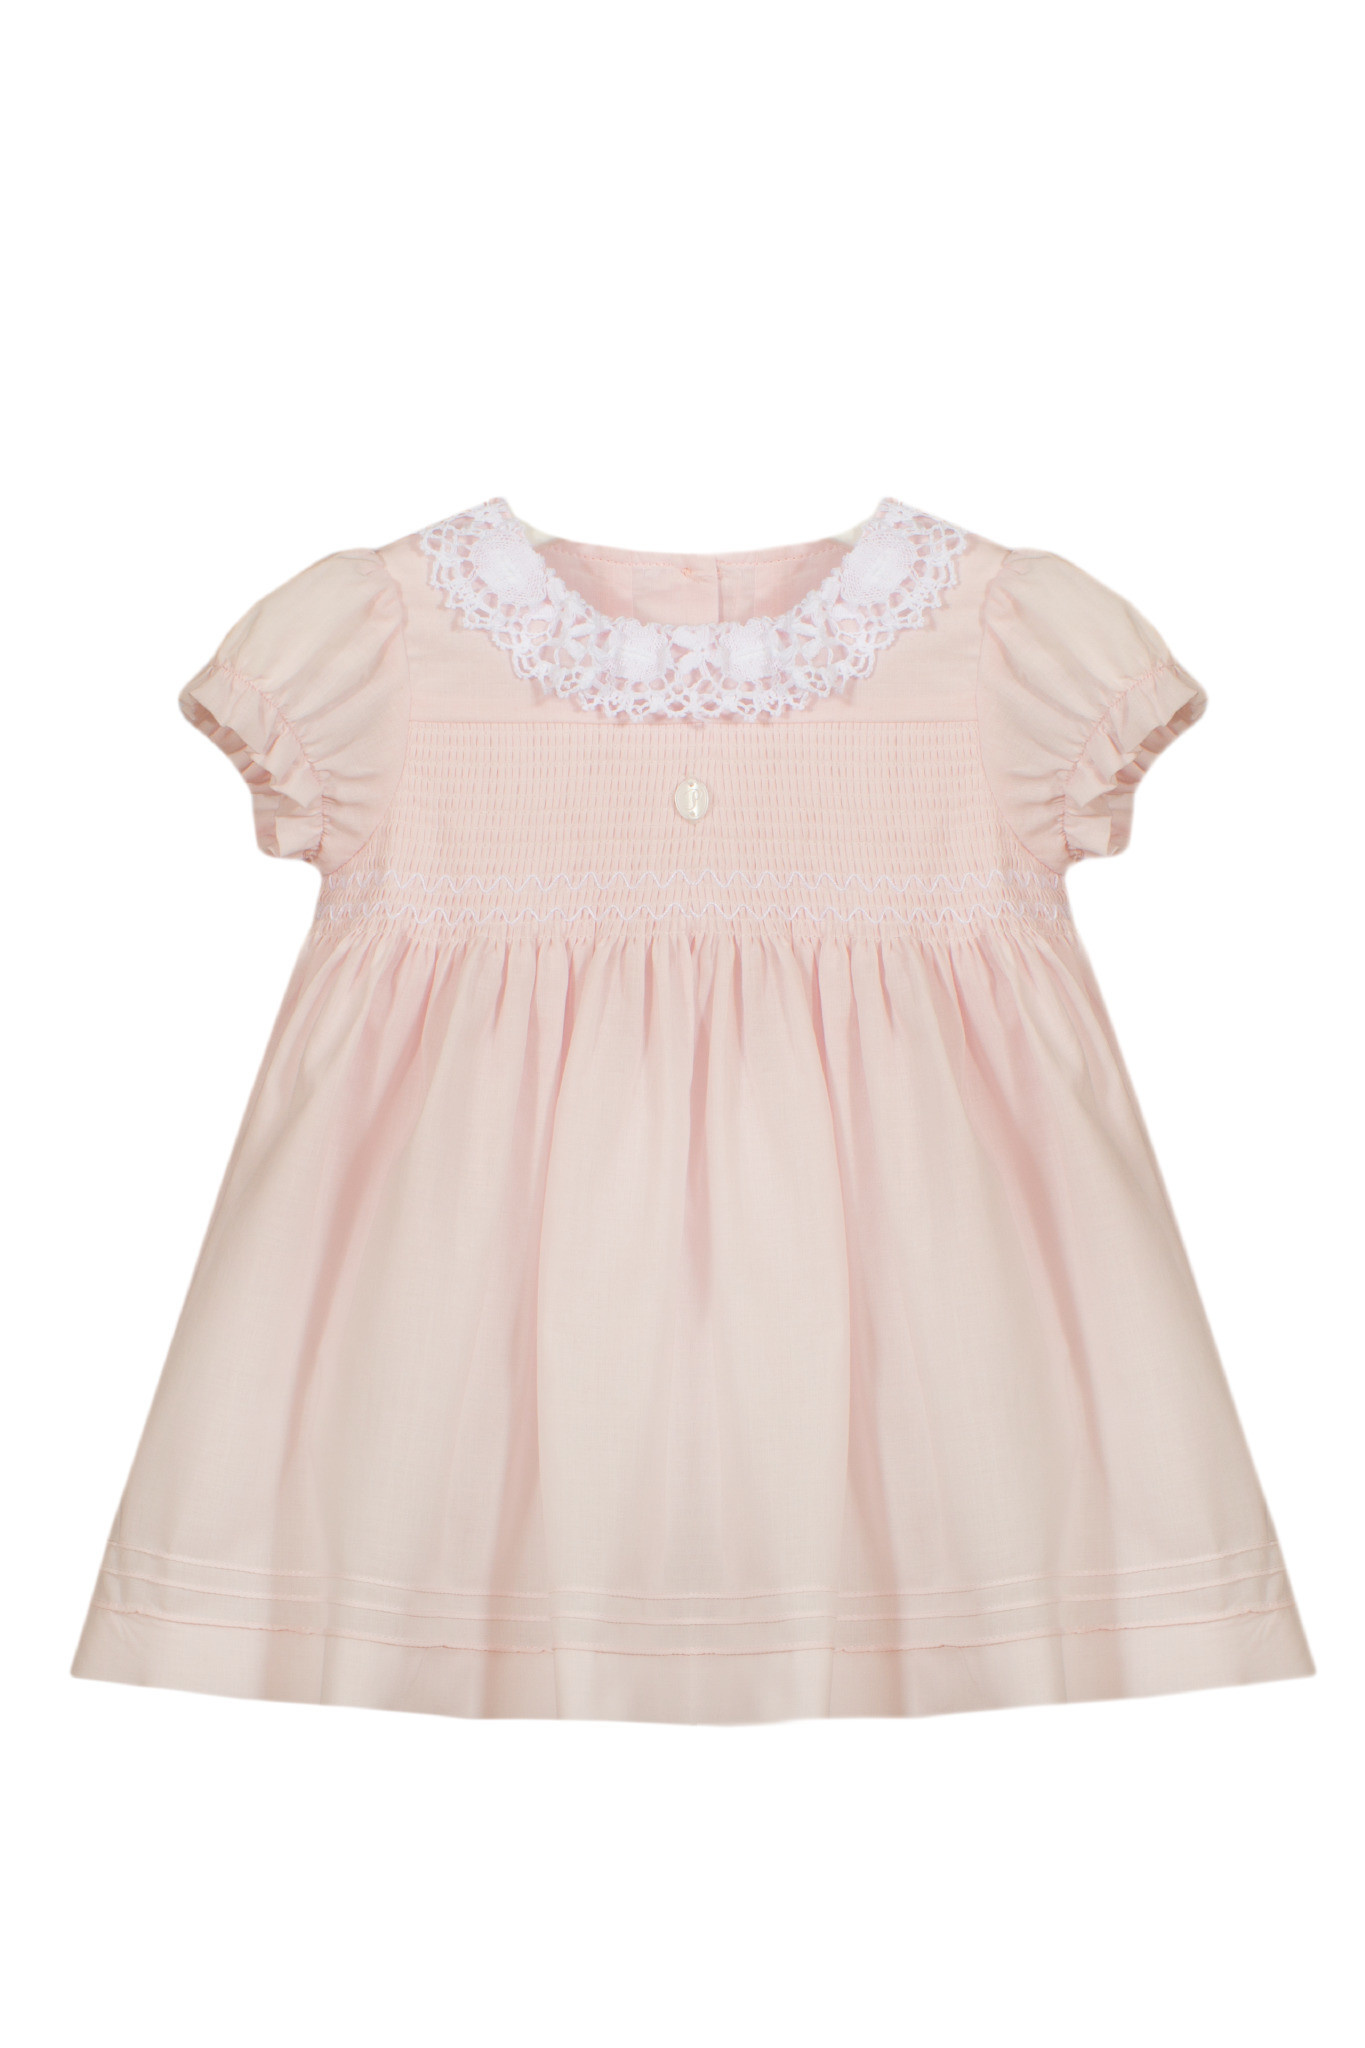 Patachou Patachou Baby 043 Smocked Pink Dress